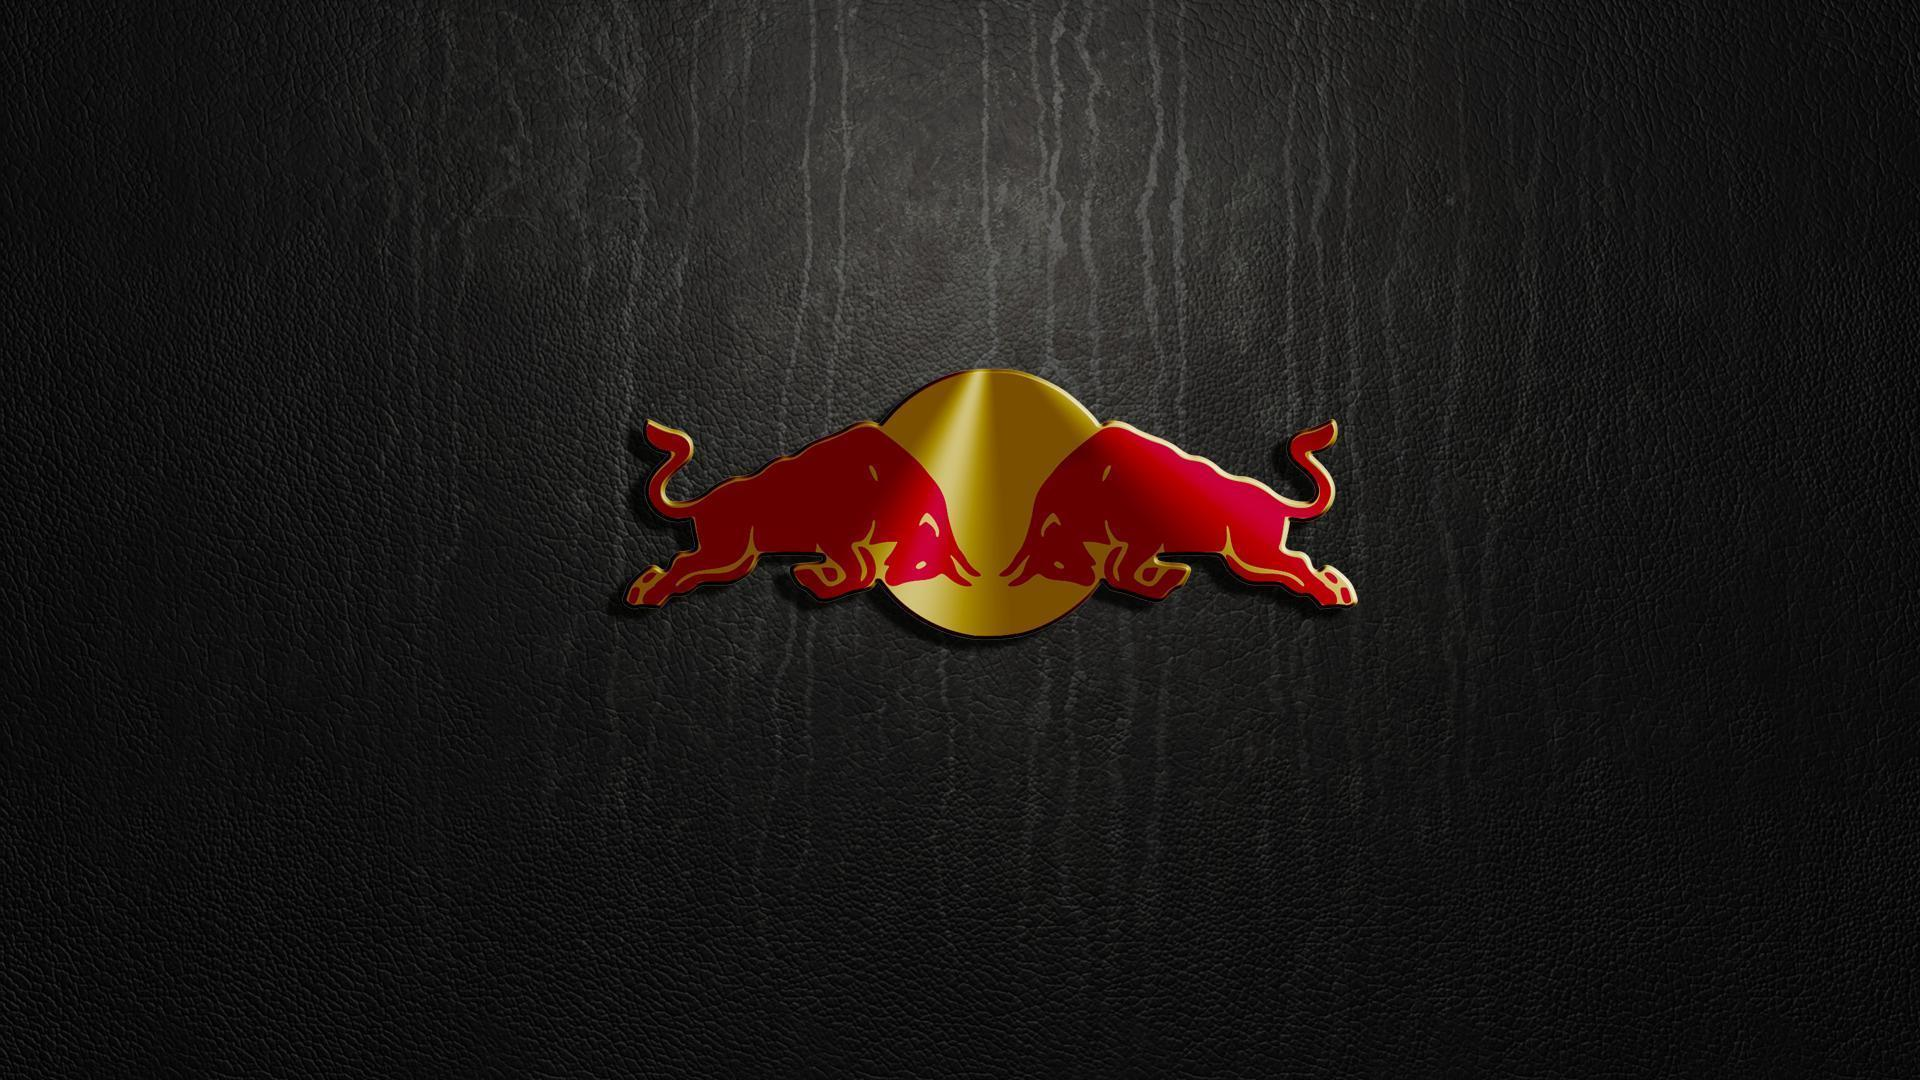 Red Bull Wallpapers Wallpaper Cave